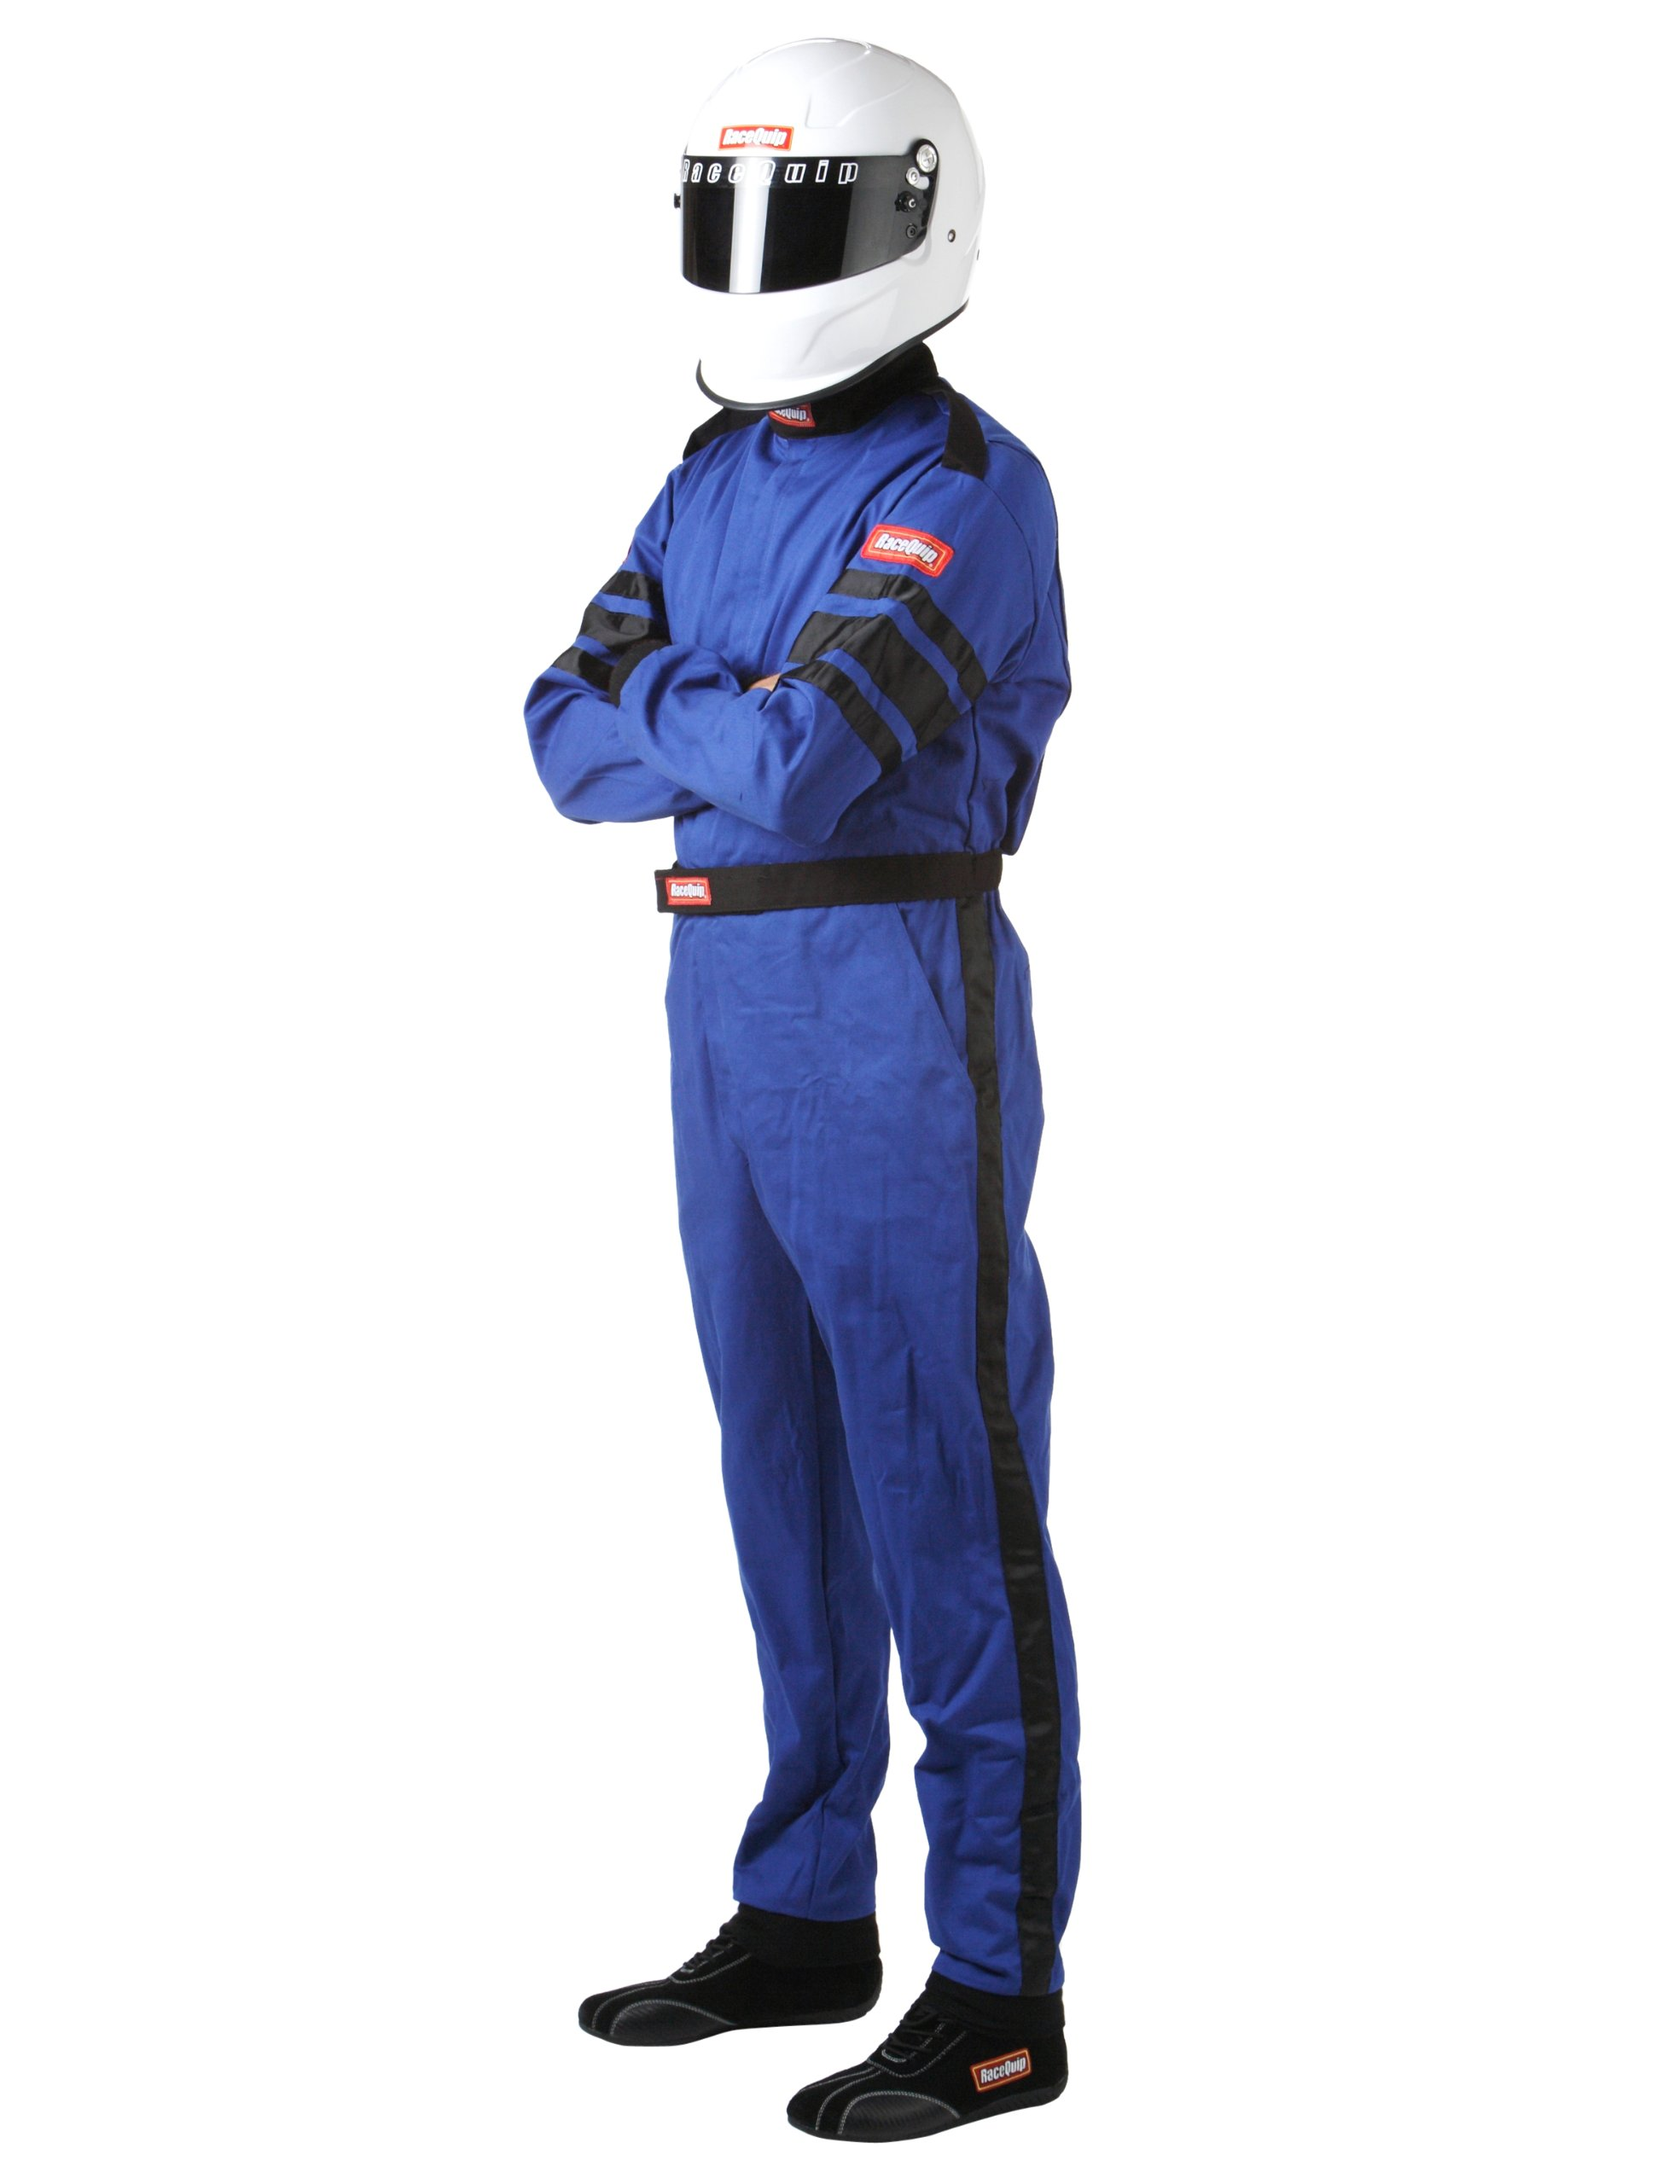 RaceQuip 110027 110 Series XX-Large Blue SFI 3.2A/1 Single Layer One-Piece Driving Suit